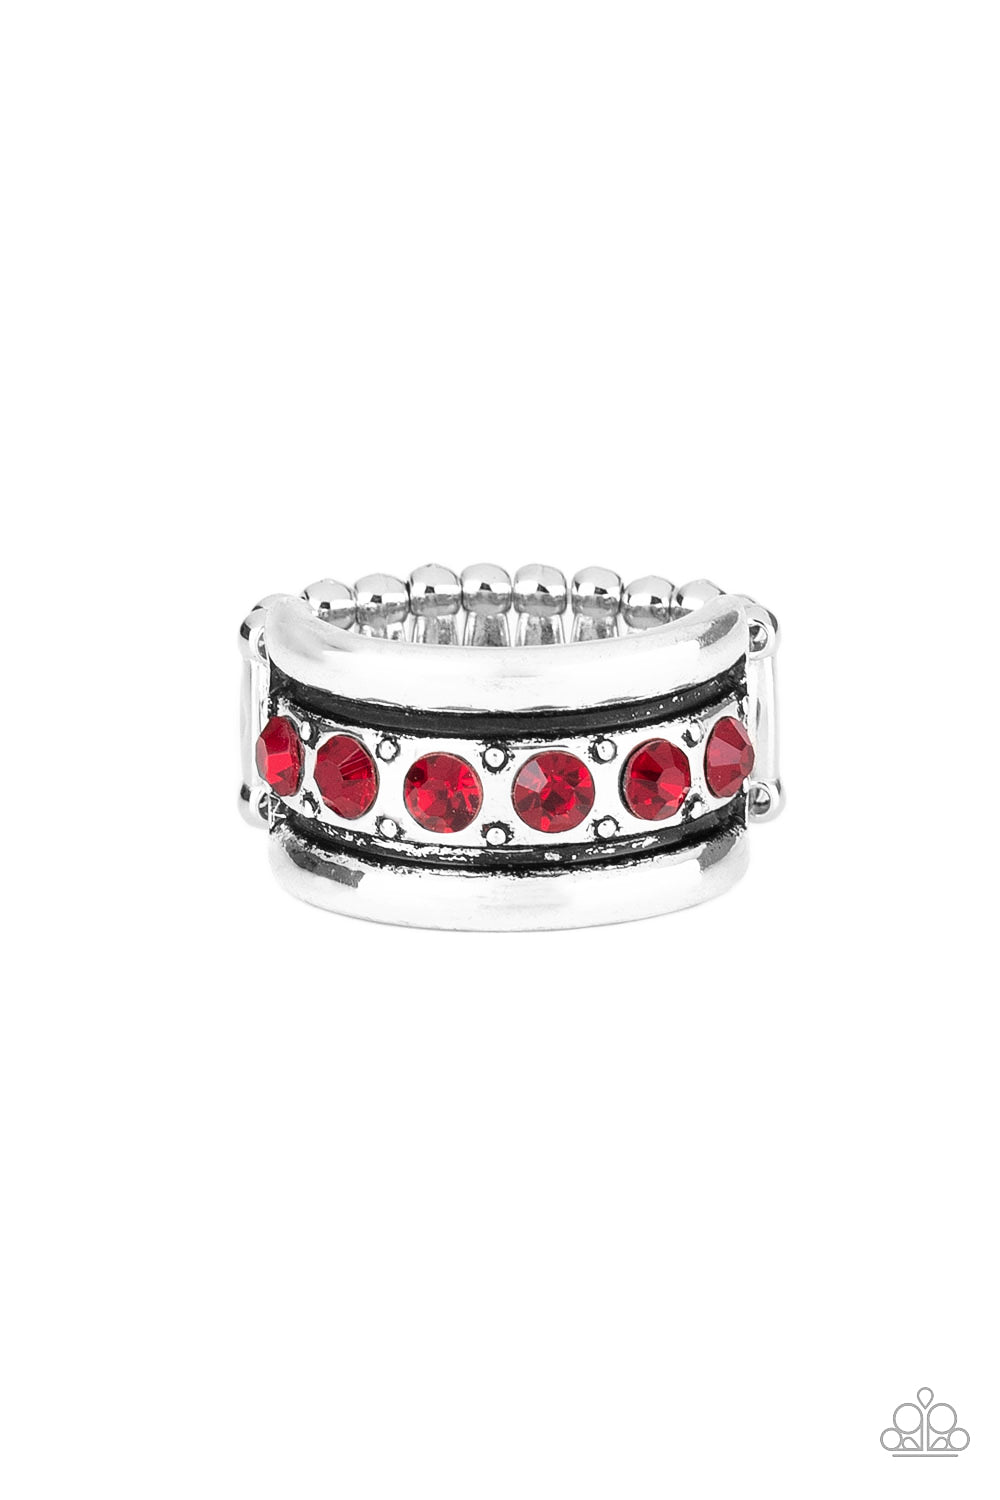 Paparazzi Dauntless Shine - Red Papa Ring